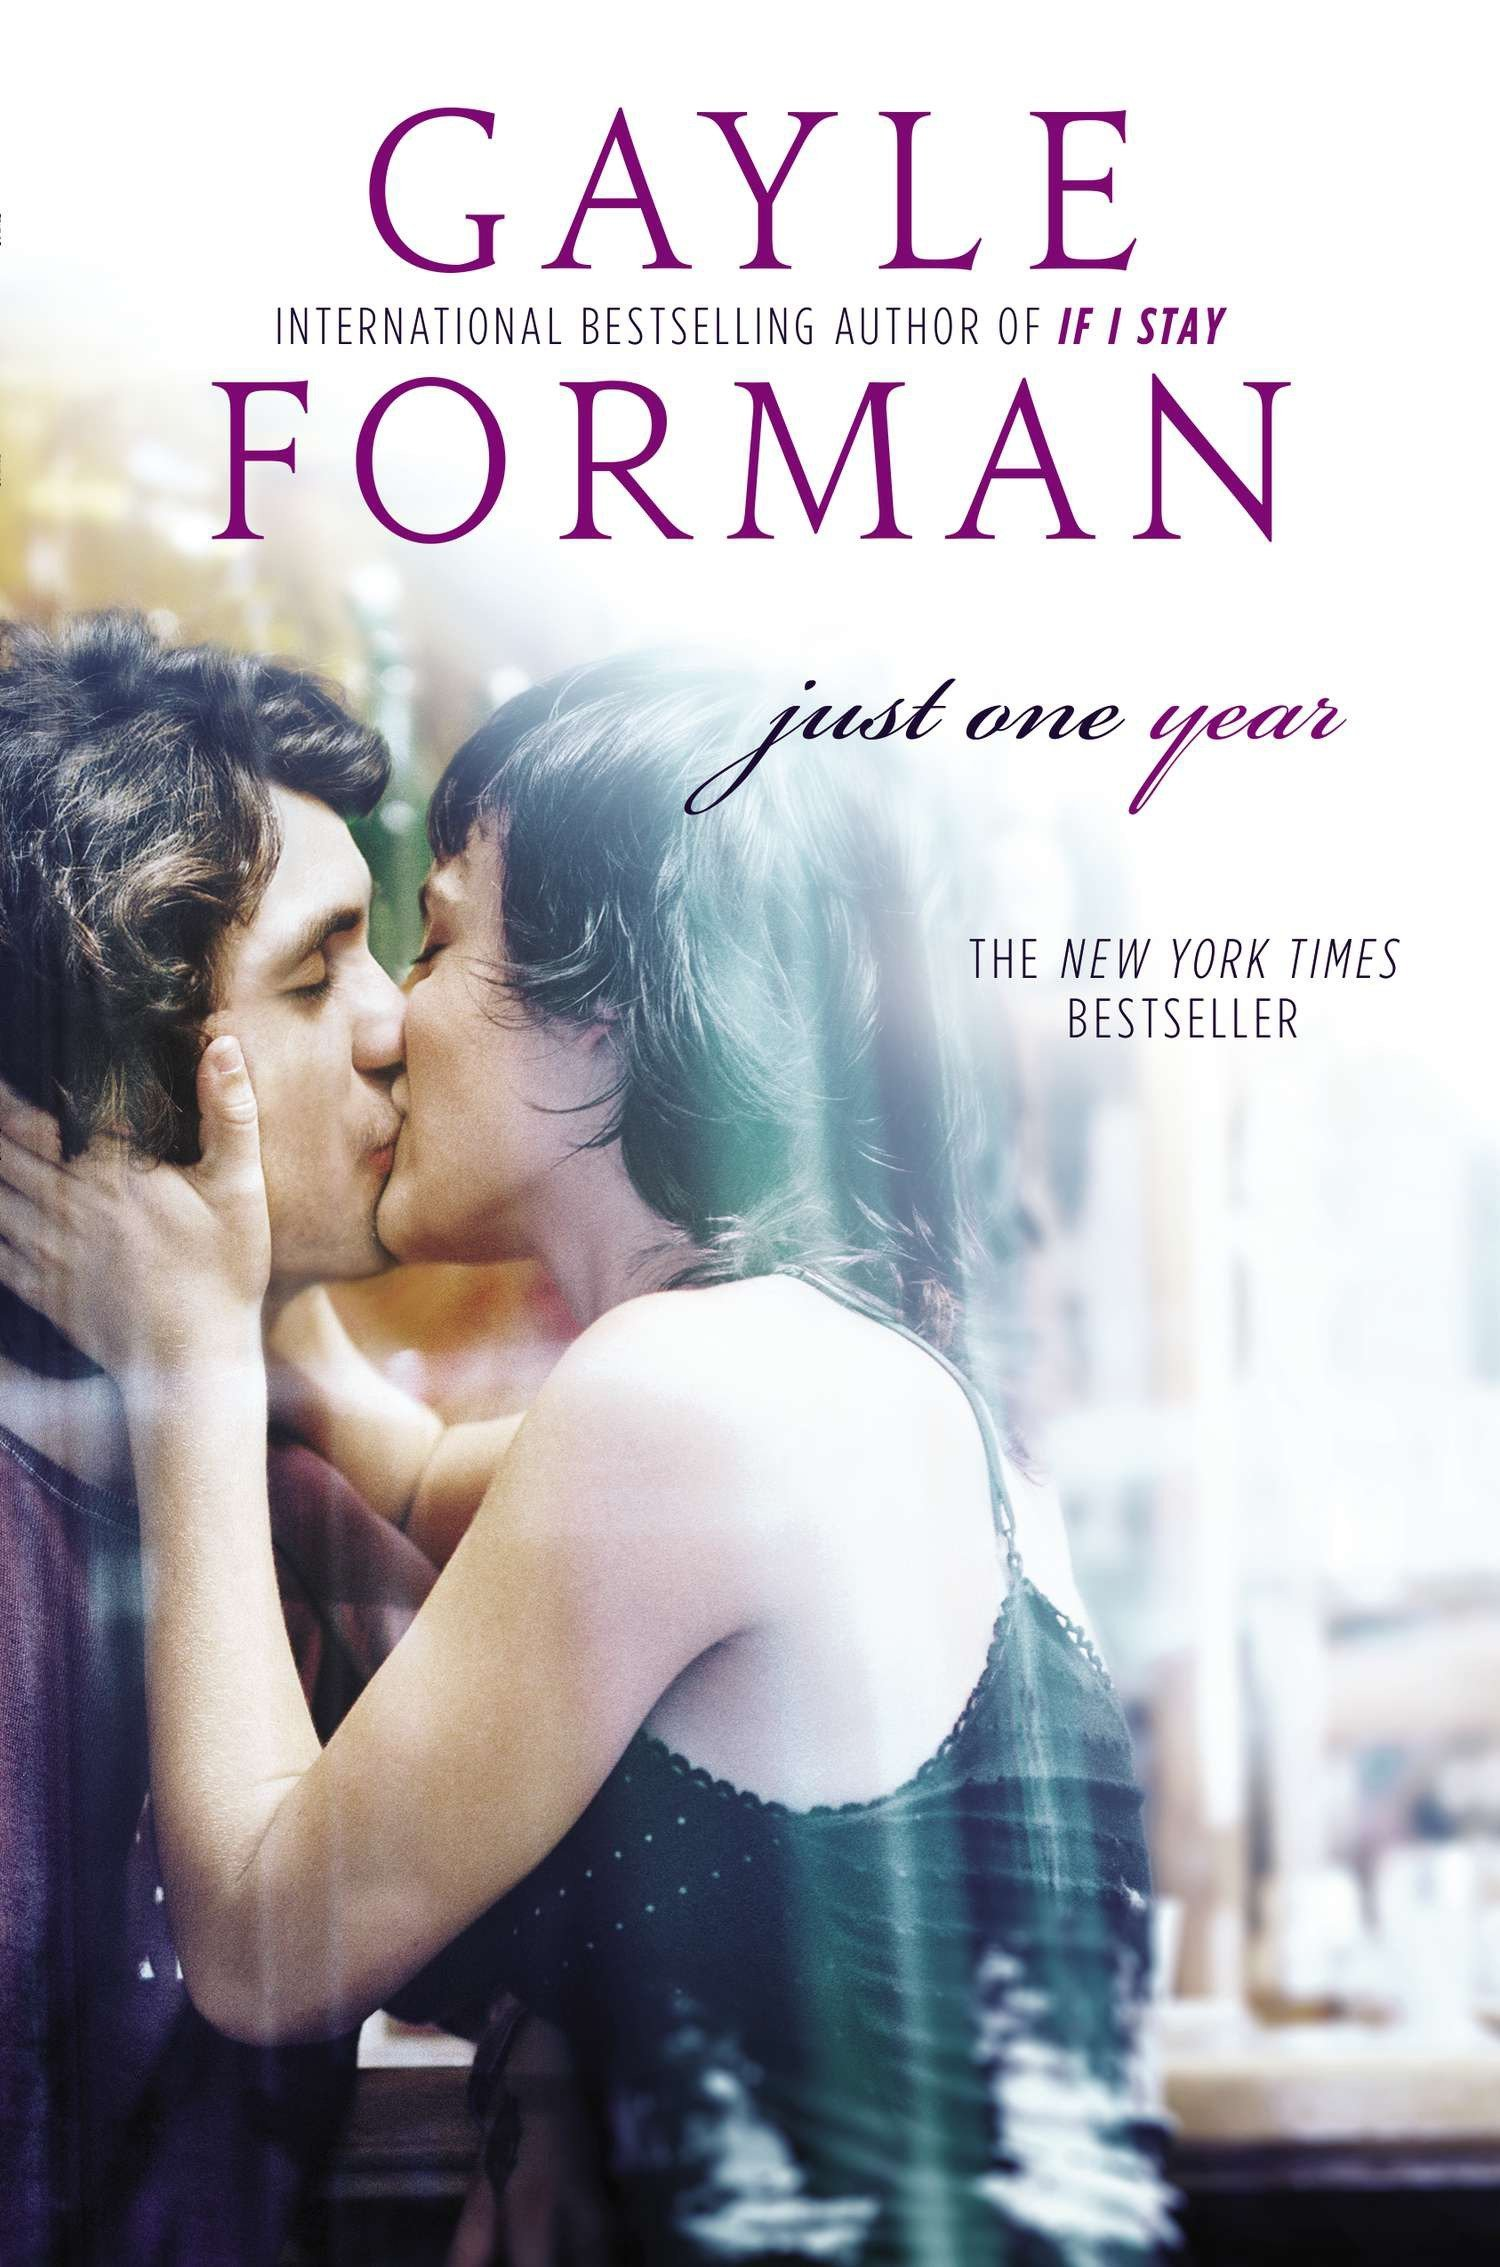 Amazon.com: Just One Year (9780525425922): Forman, Gayle: Books